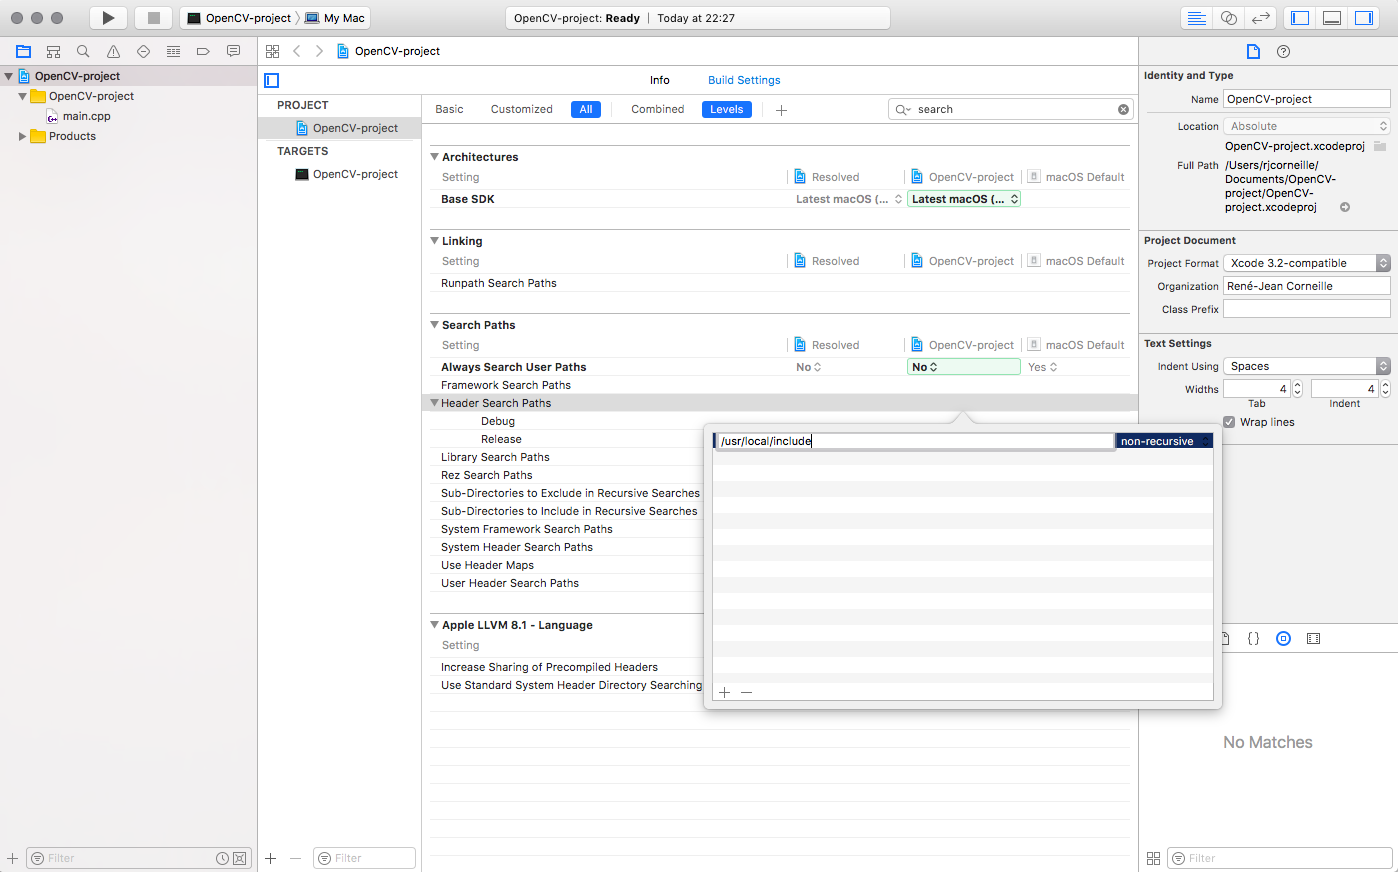 Setting up Xcode for C++ projects - René-Jean Corneille - Medium